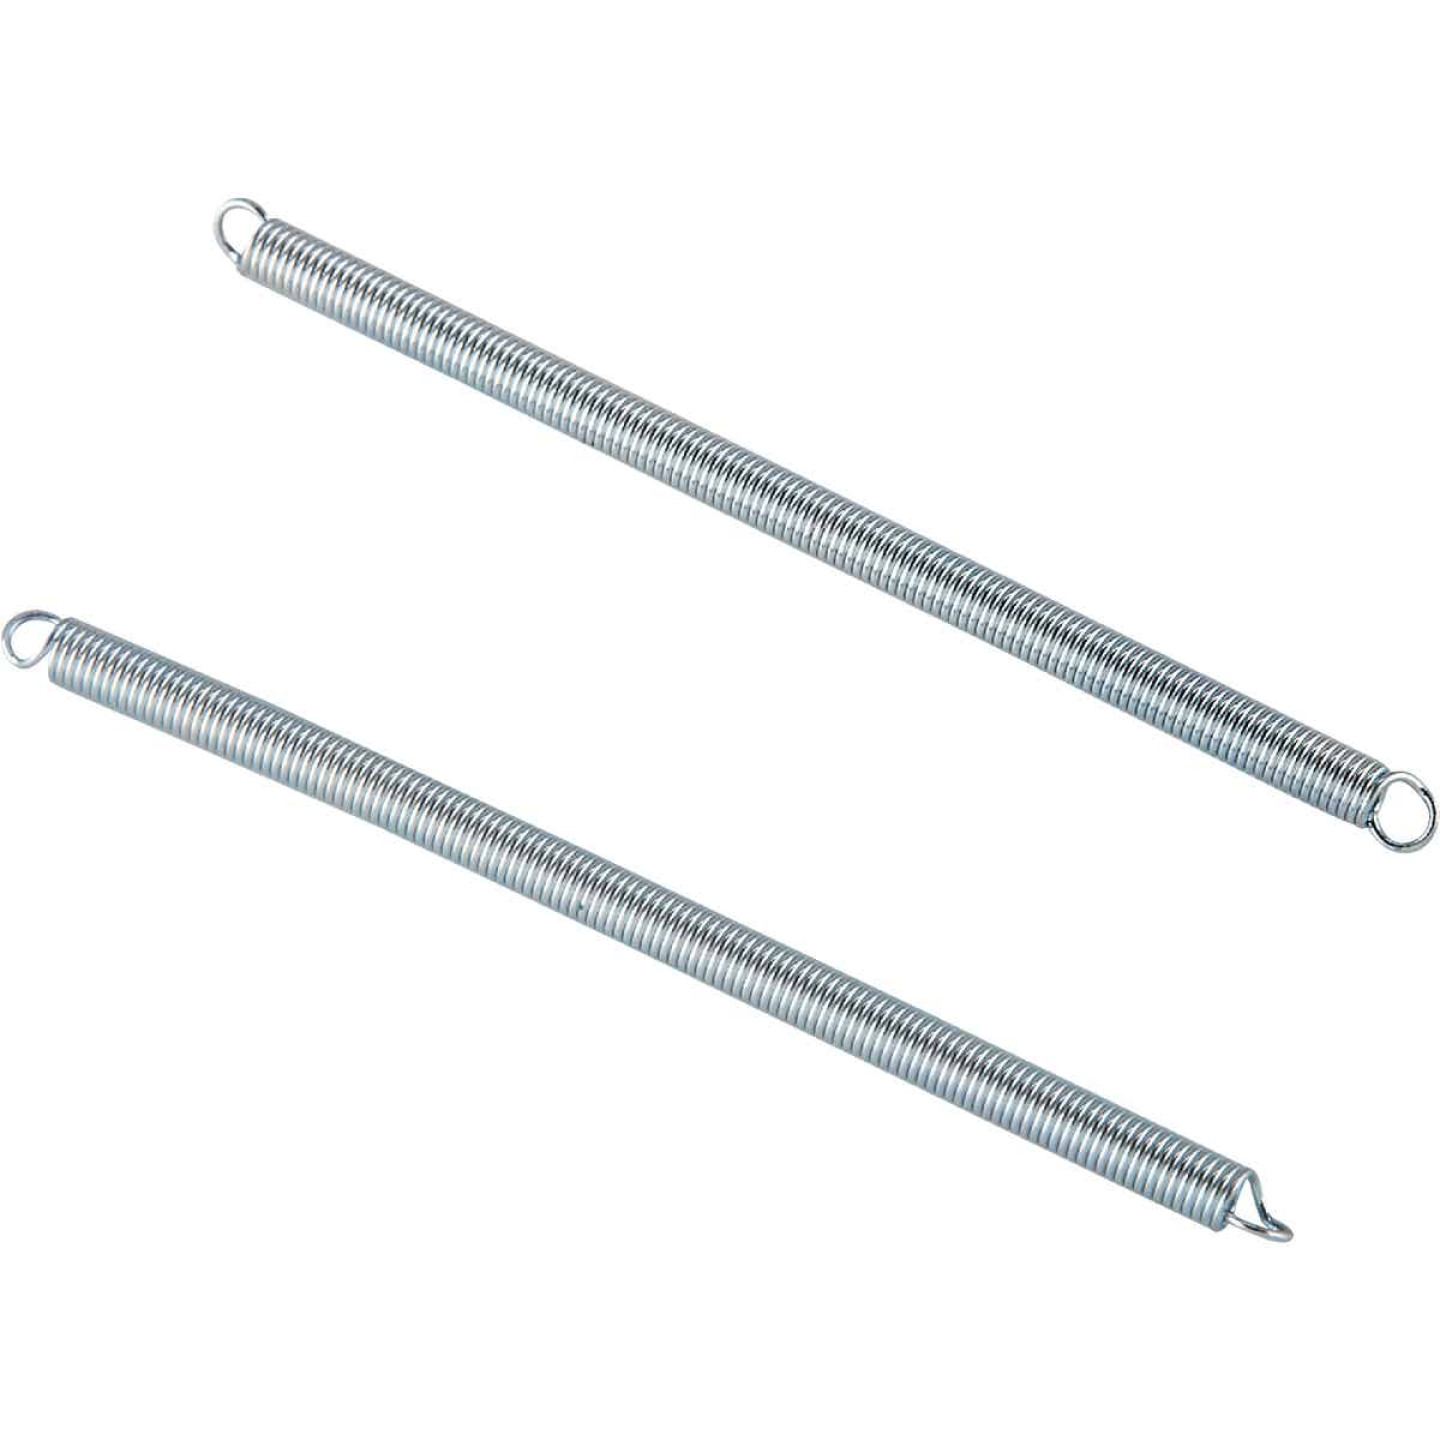 Century Spring 5 In. x 3/8 In. Extension Spring (2 Count) Image 1